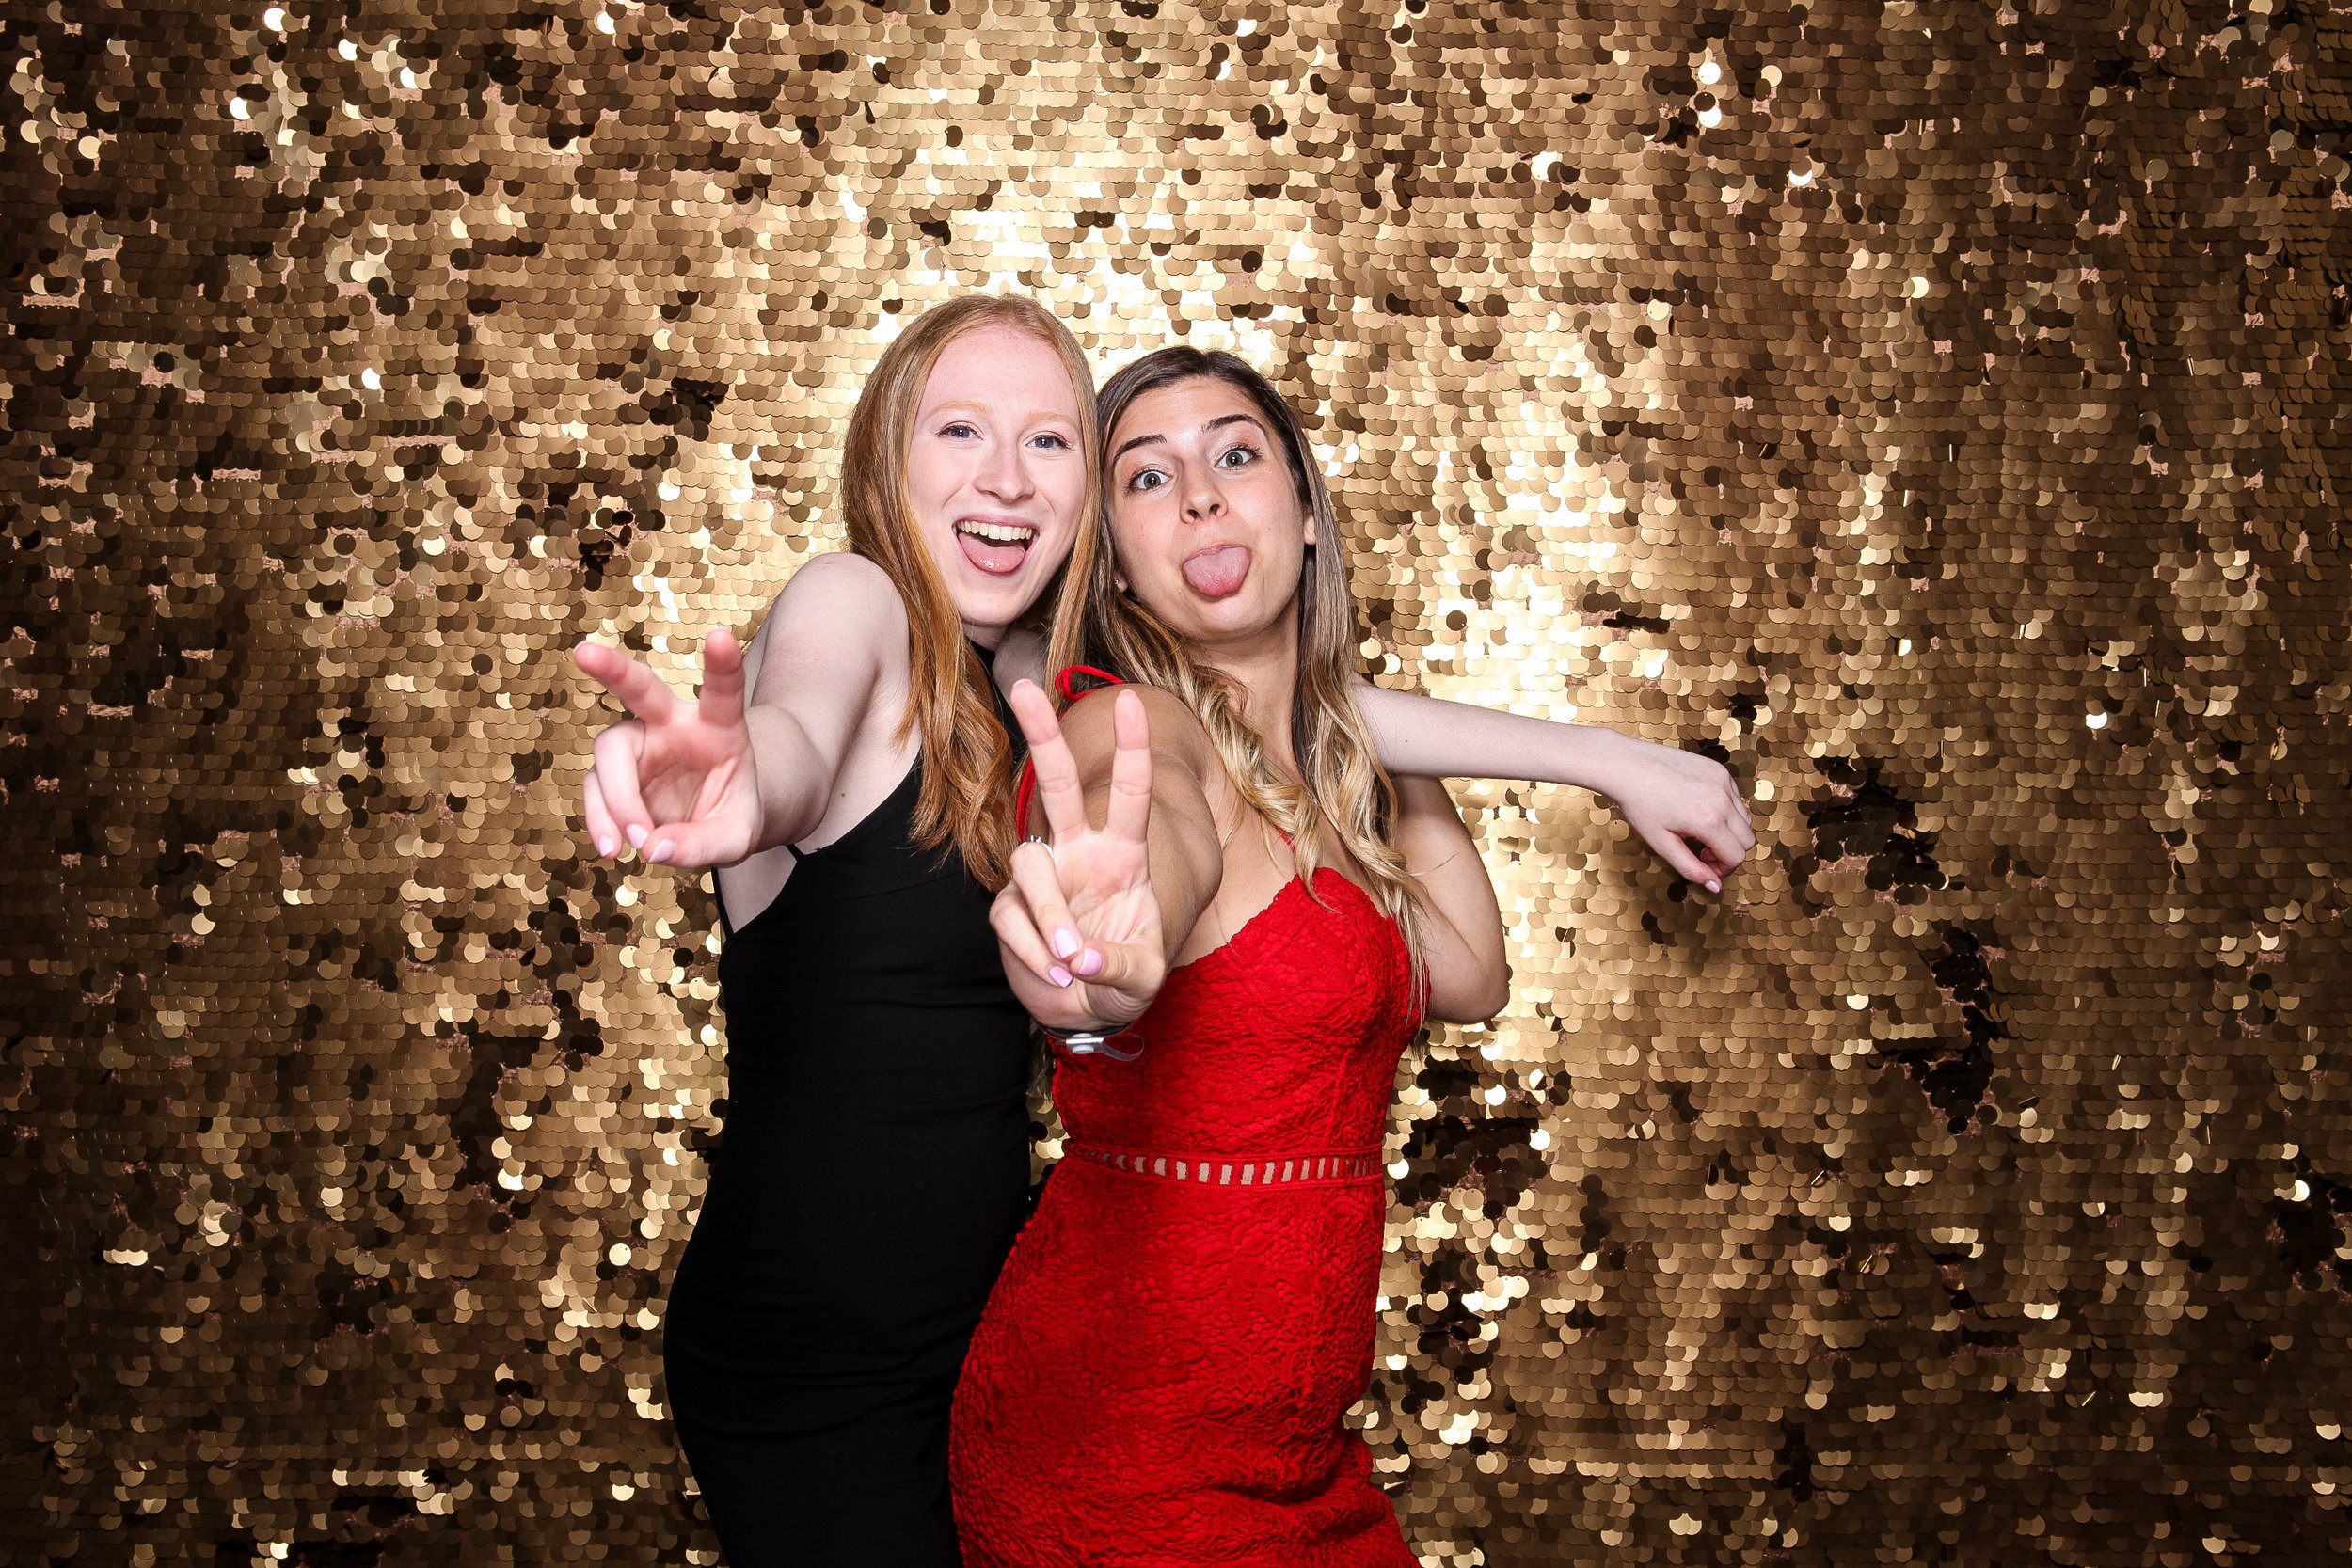 20190503_Adelphi_Senior_Formal-307.jpg